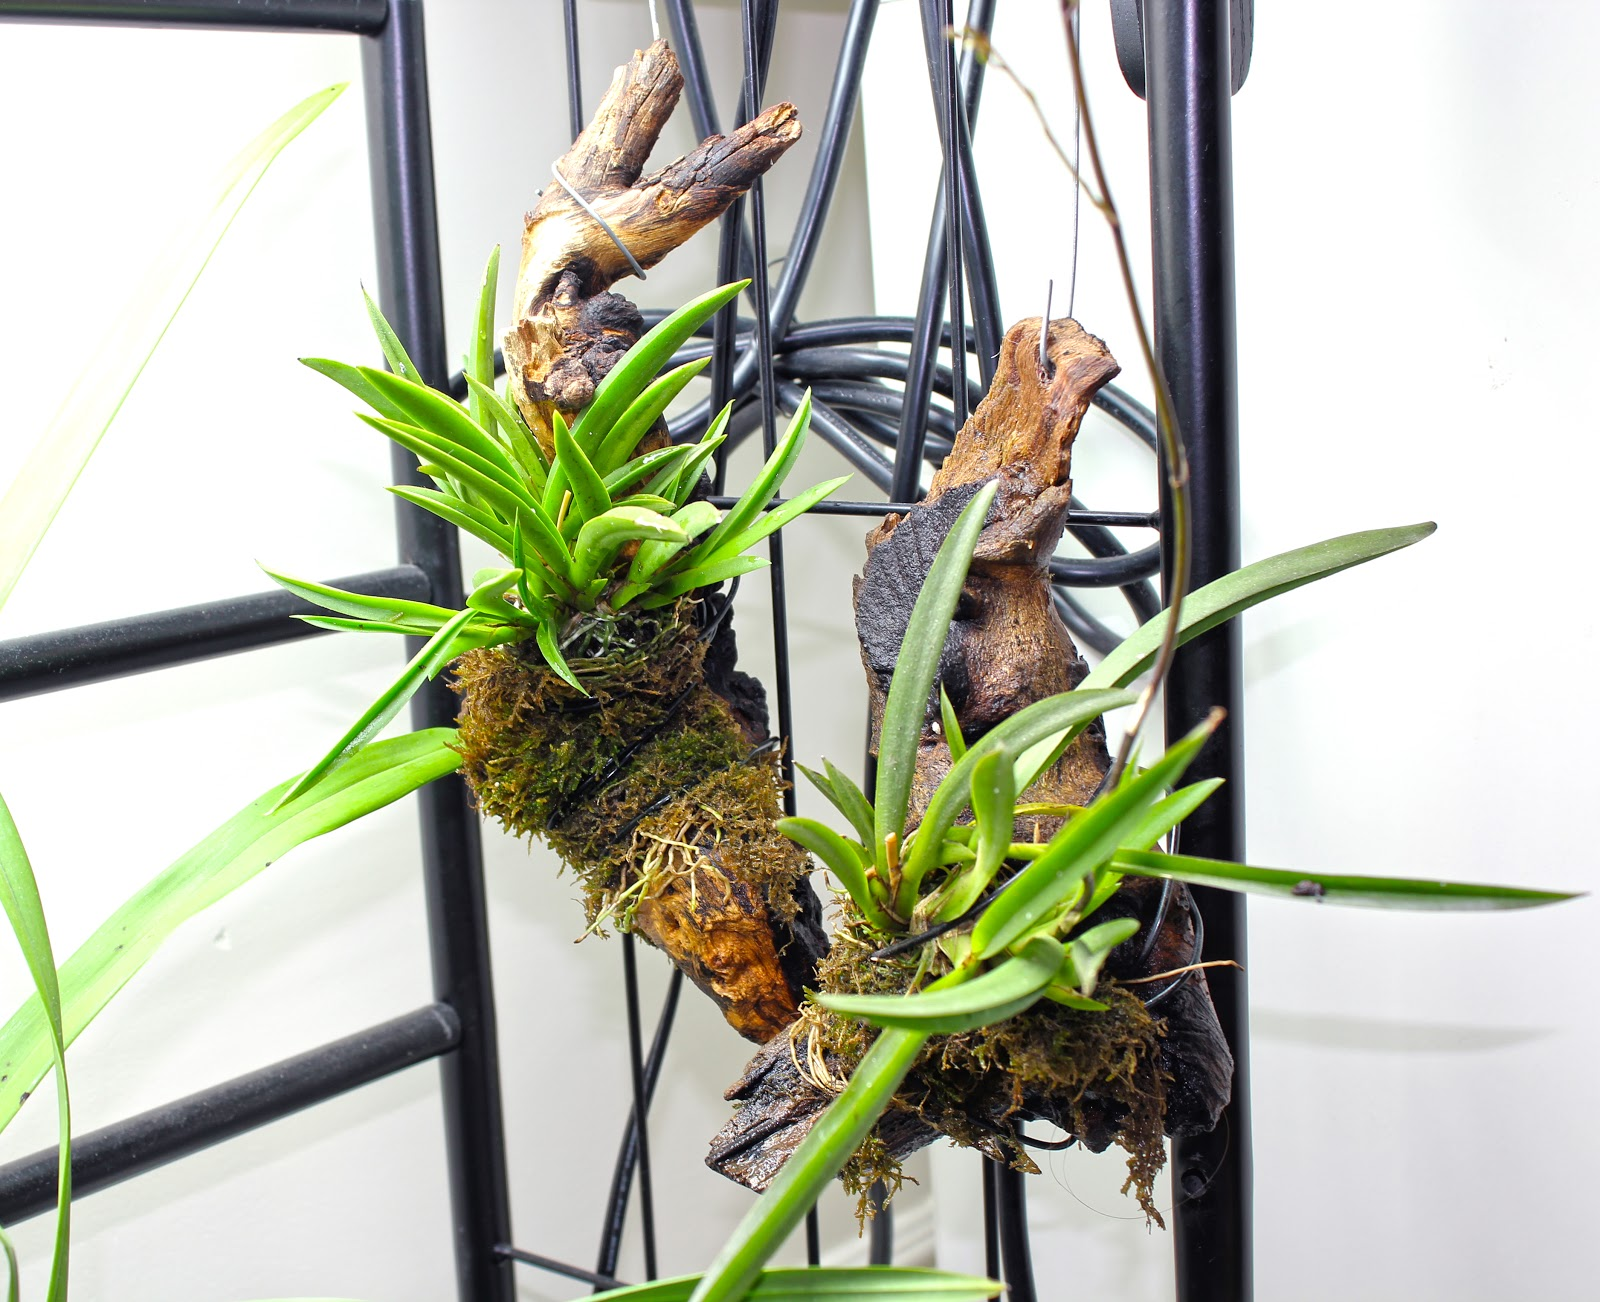 Platycerium Bifurcatum moreover Remounting Tolumnia Pink Panther in addition Cymbidium madidum together with Arctostaphylos X Coloradoensis in addition Terrestrial Fir Orchid Mix. on growing orchids in bark